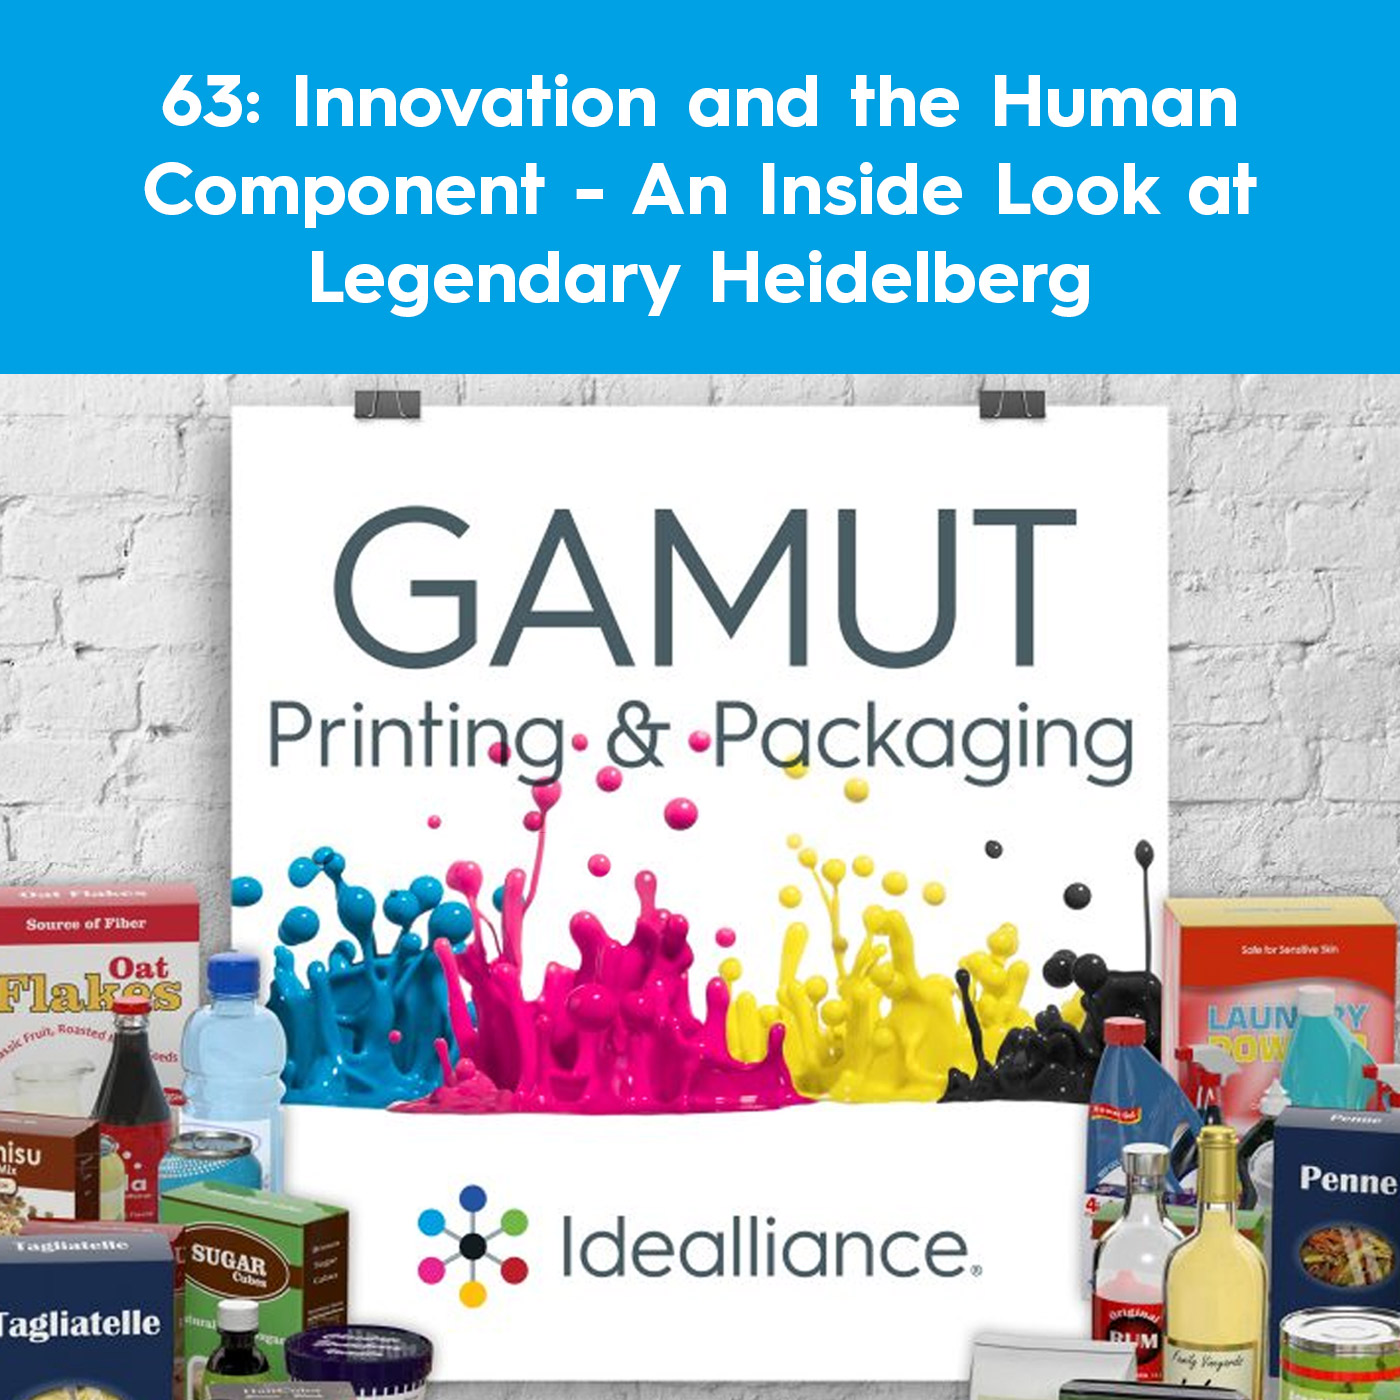 Innovation and the Human Component - An Inside Look at Legendary Heidelberg | GAMUT Podcast #63 from Idealliance